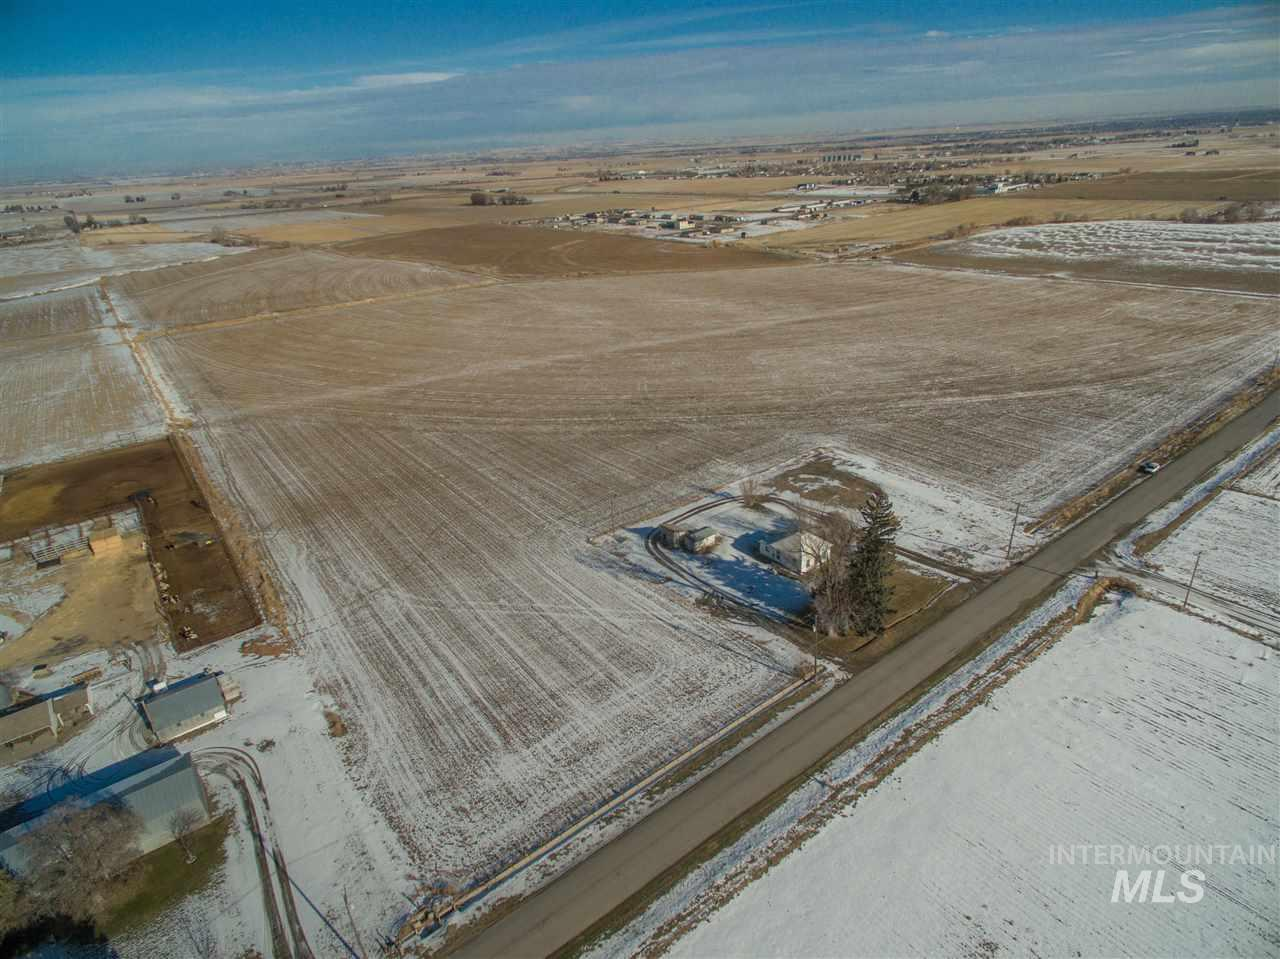 2356 E 3800 N,Filer,Idaho 83328,Land,2356 E 3800 N,98679142